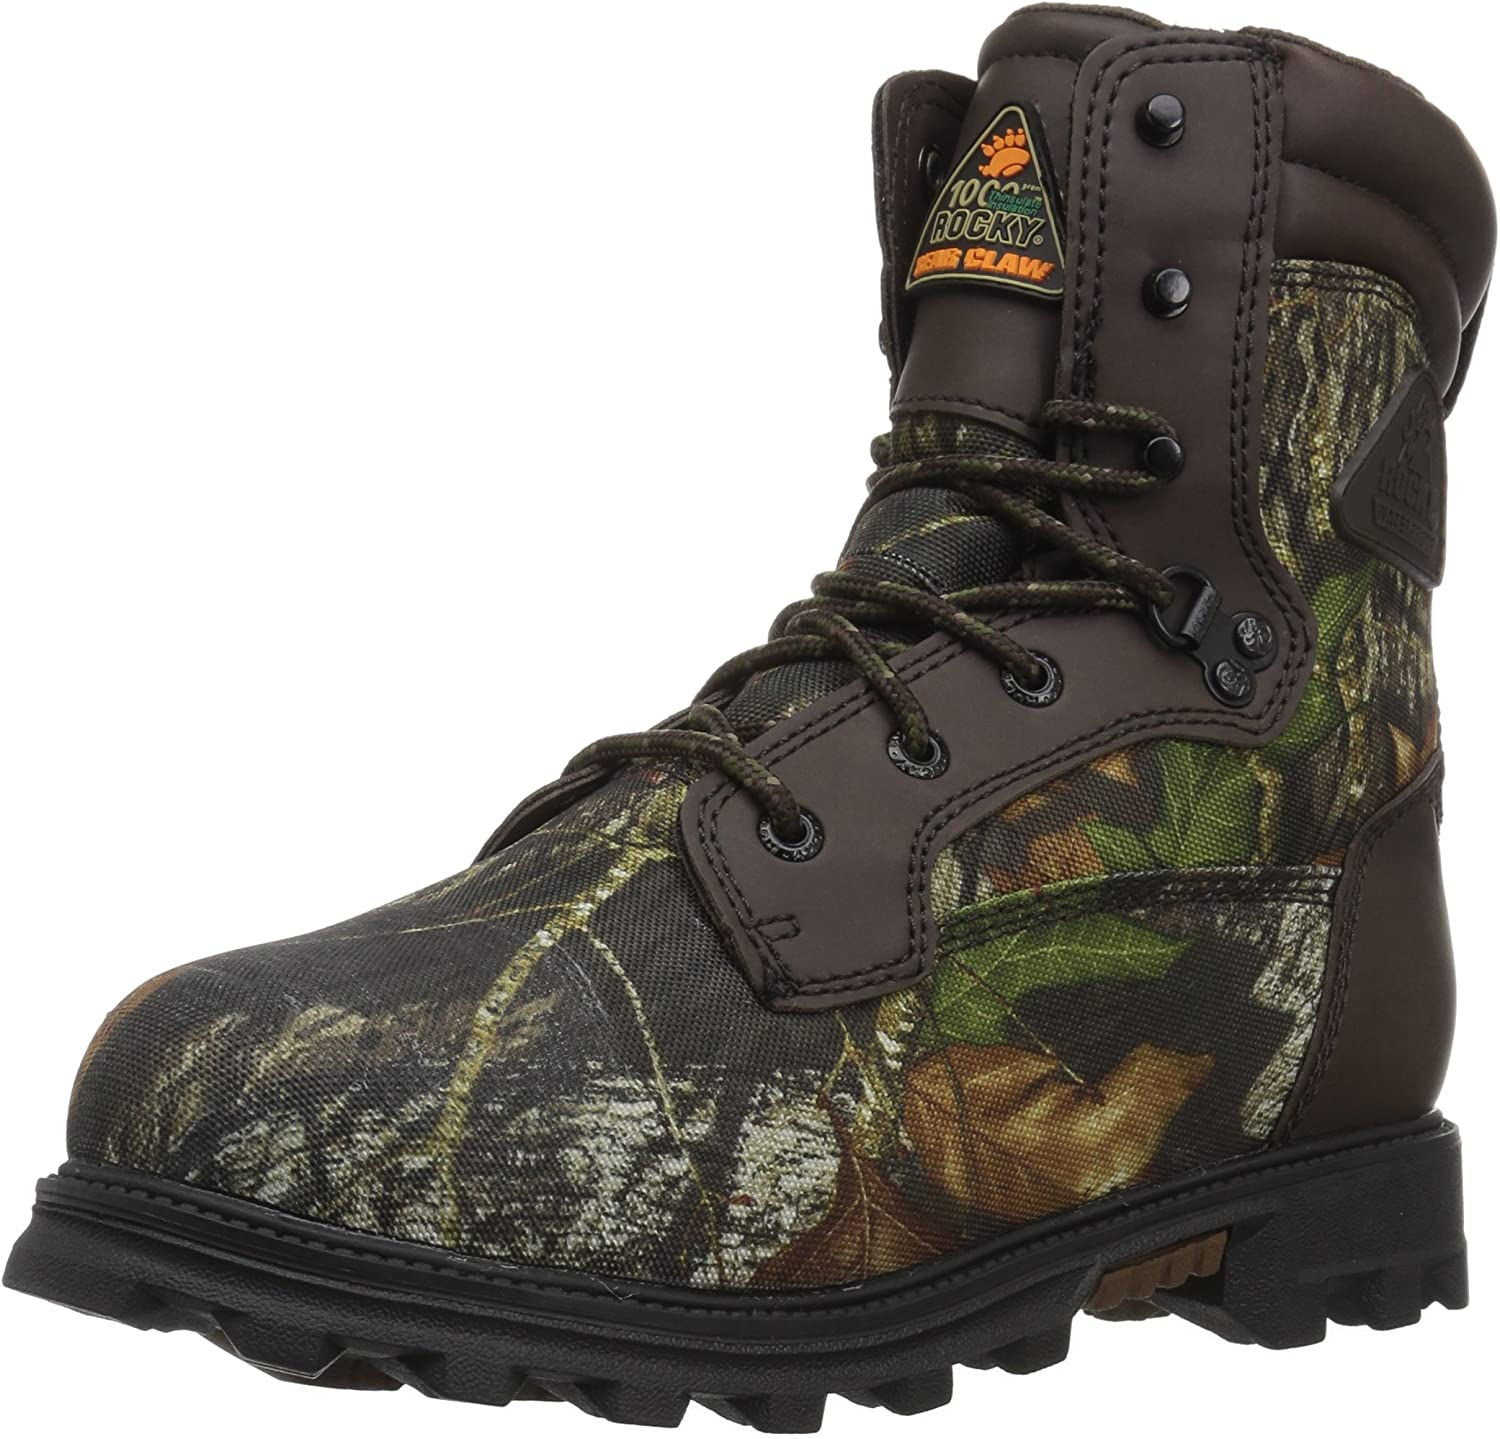 Boys' Rocky BearClaw 3D 1000 - gram Insulated Waterproof Boots Mossy Oak Break - up